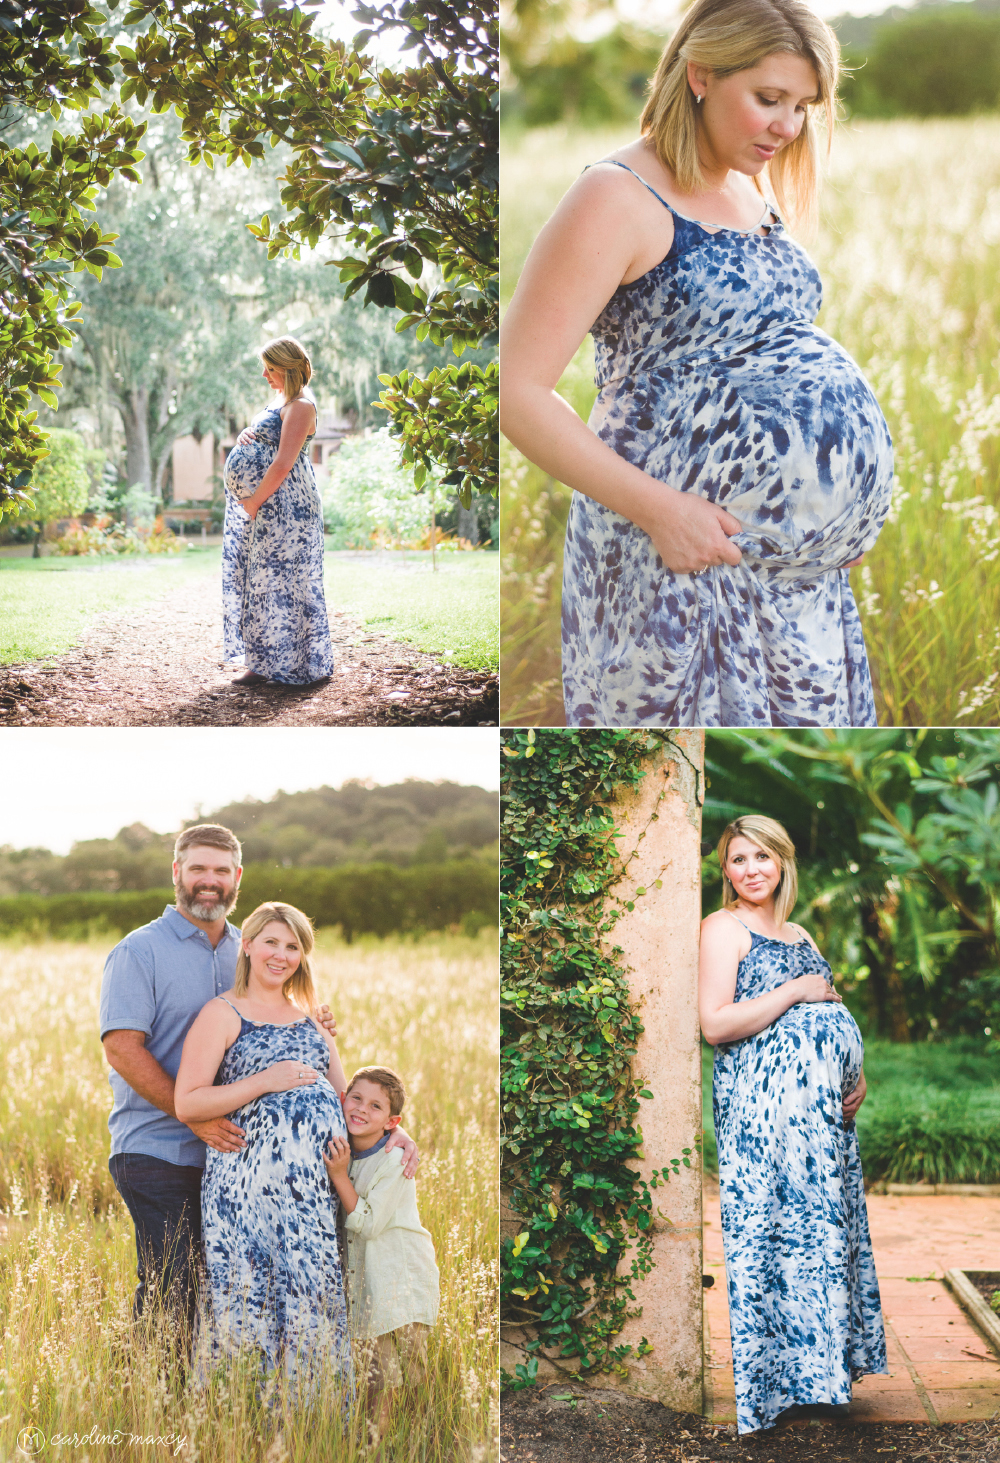 Bok Tower Gardens in Lake Wales, FL Maternity Photography.